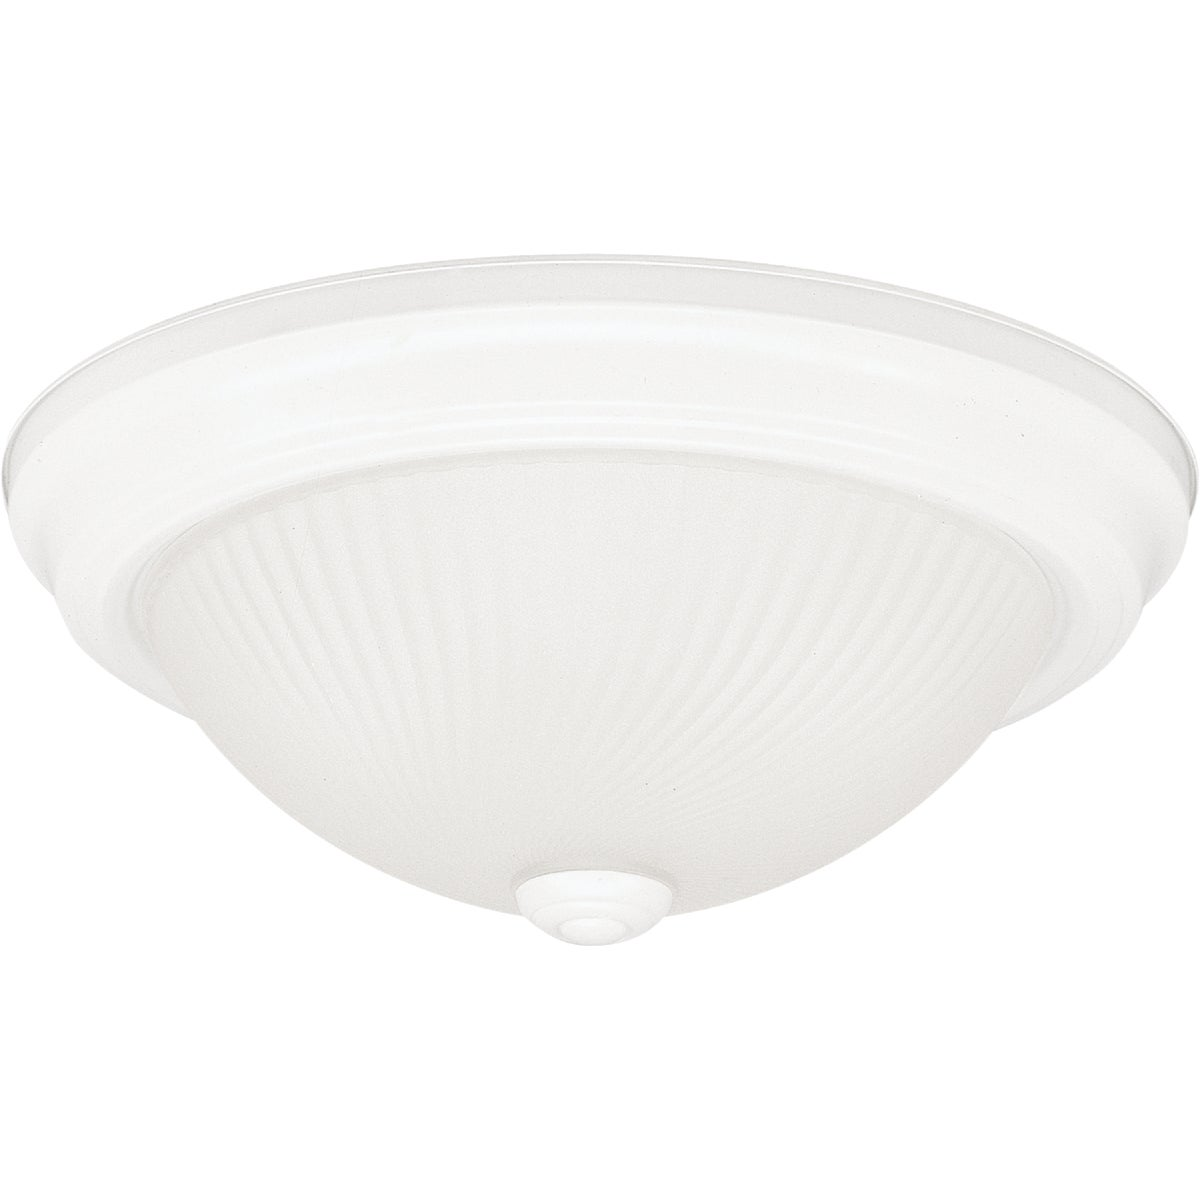 2BULB WH CEILING FIXTURE - IFM211WH by Canarm Gs